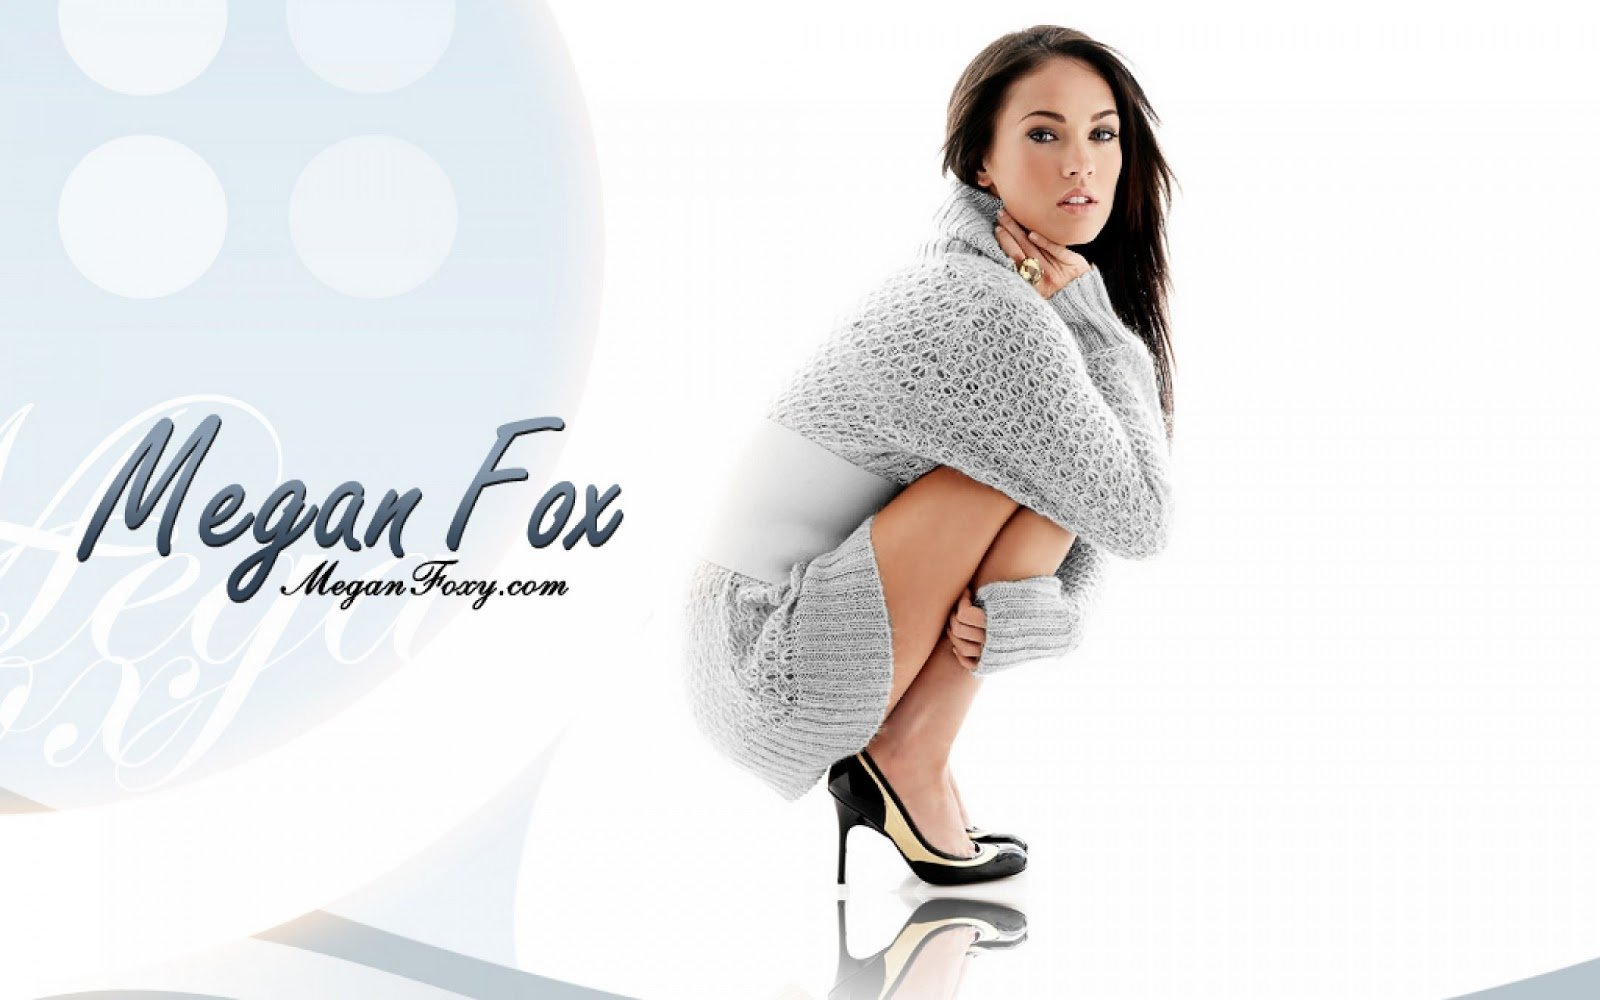 Megan Fox hd Wallpaper 1600x1000